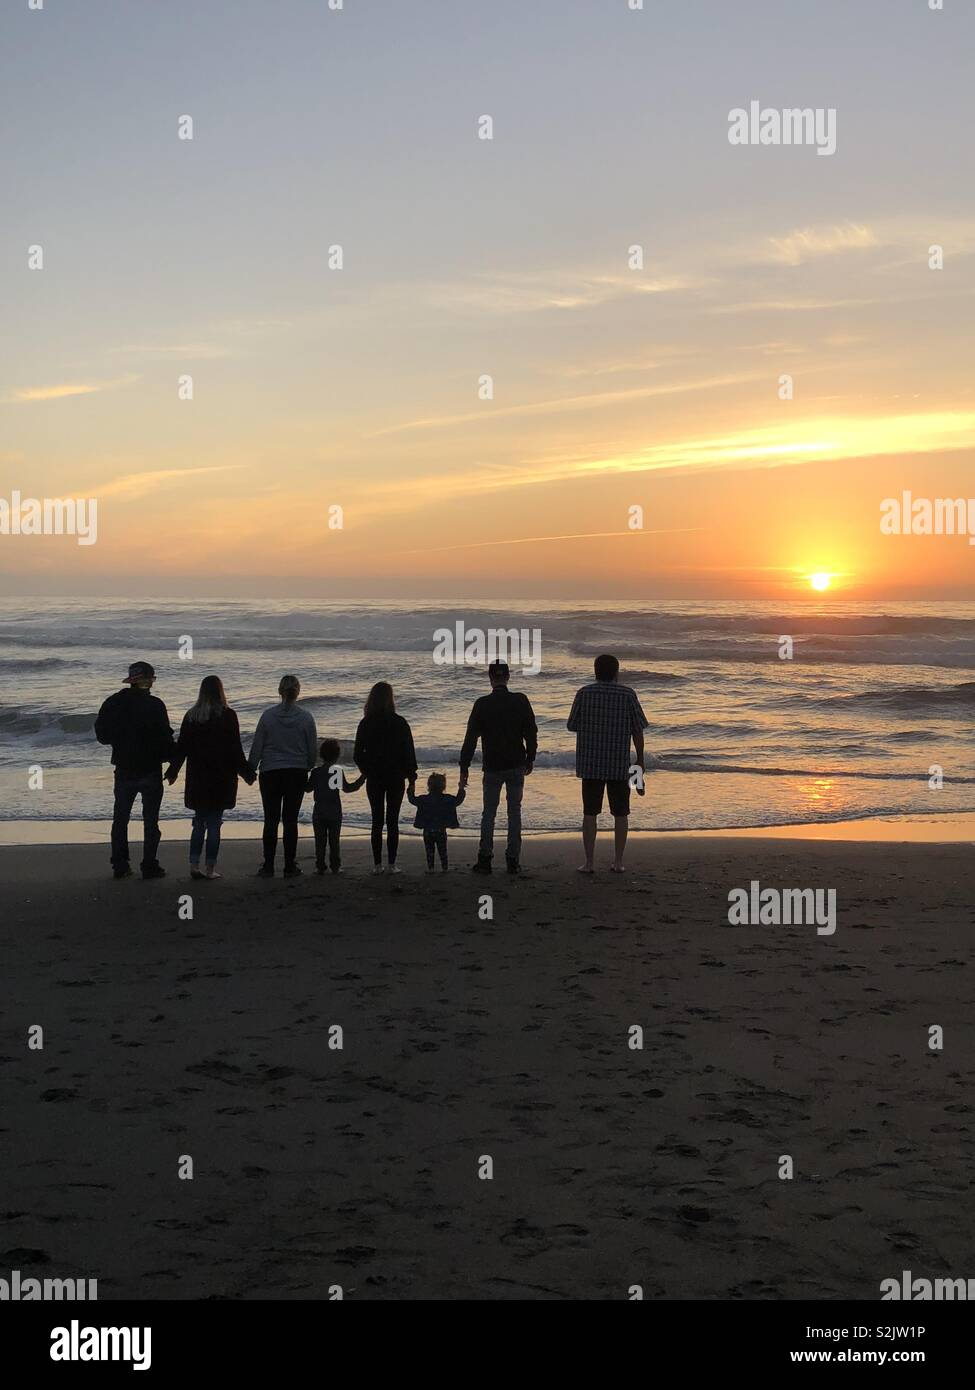 Family coast life - Stock Image